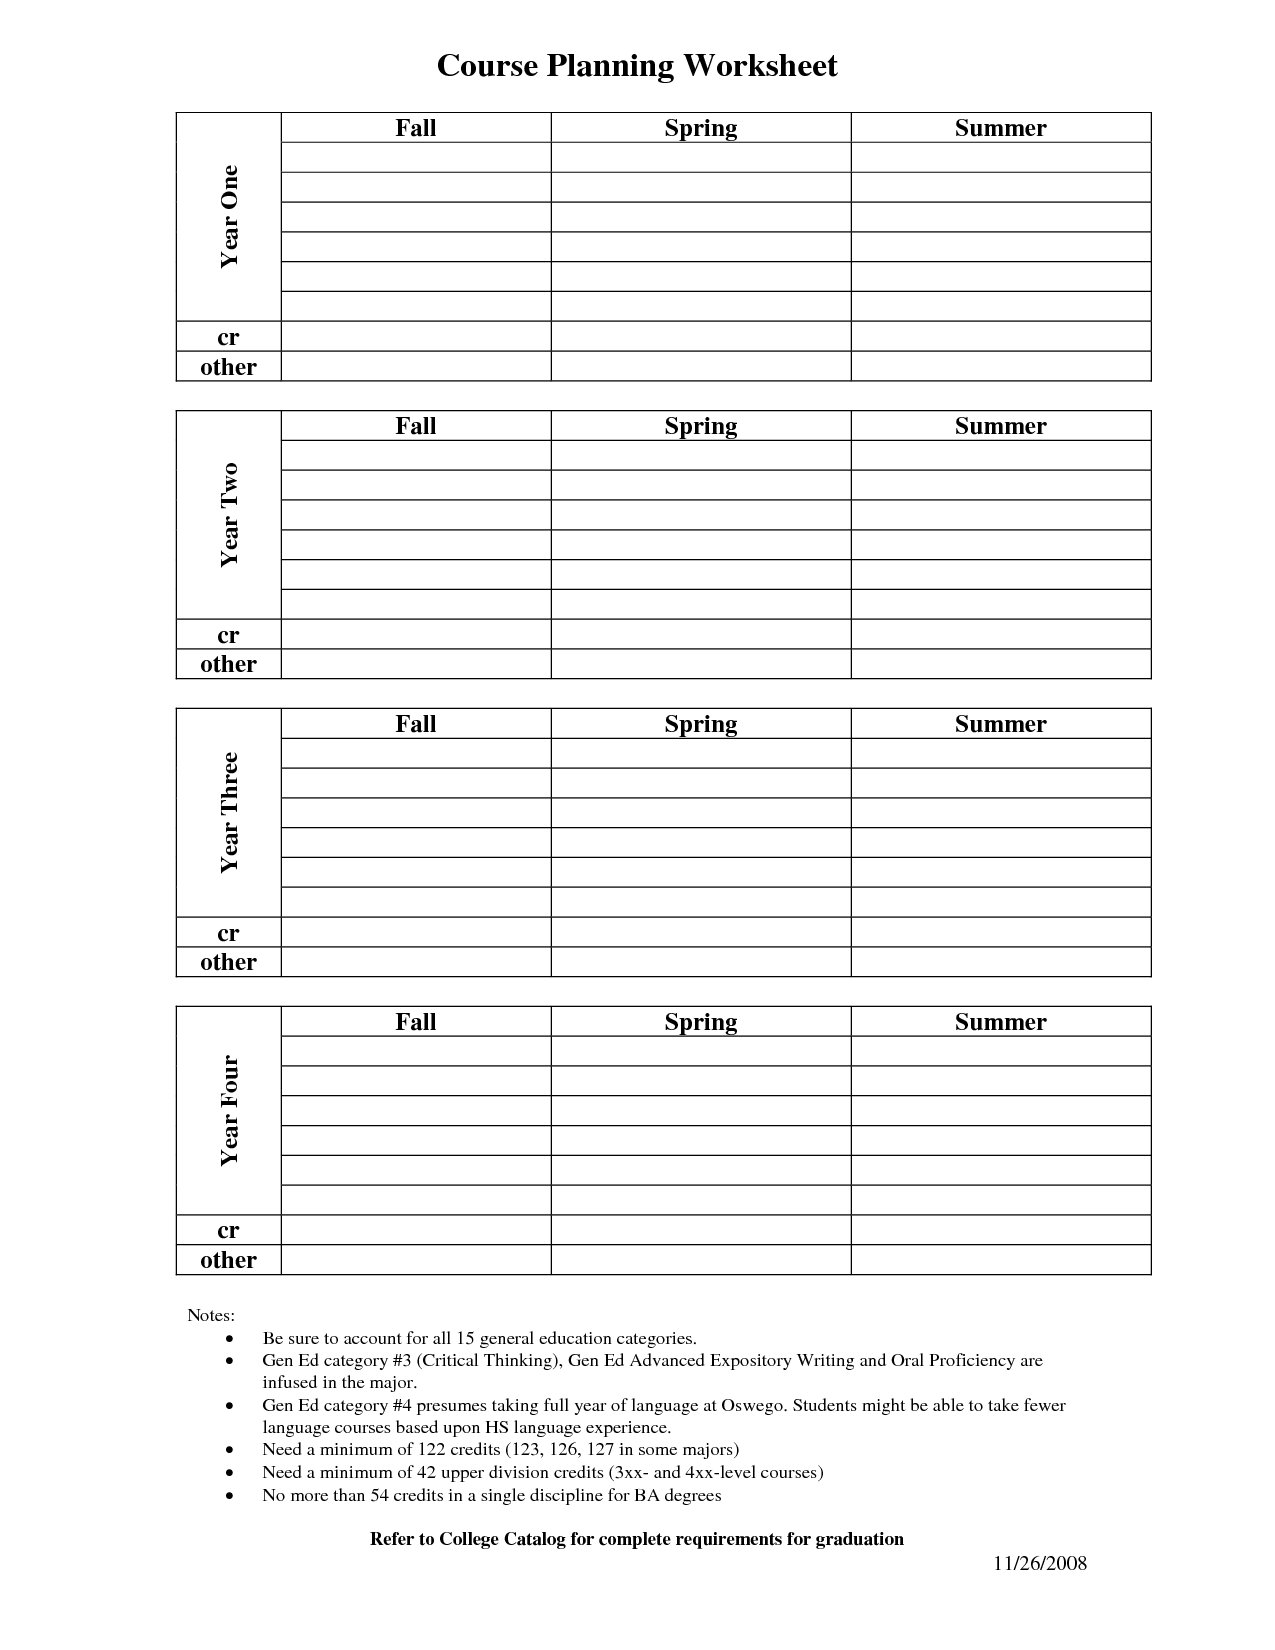 11 Best Images Of Four Year Course Planning Worksheet